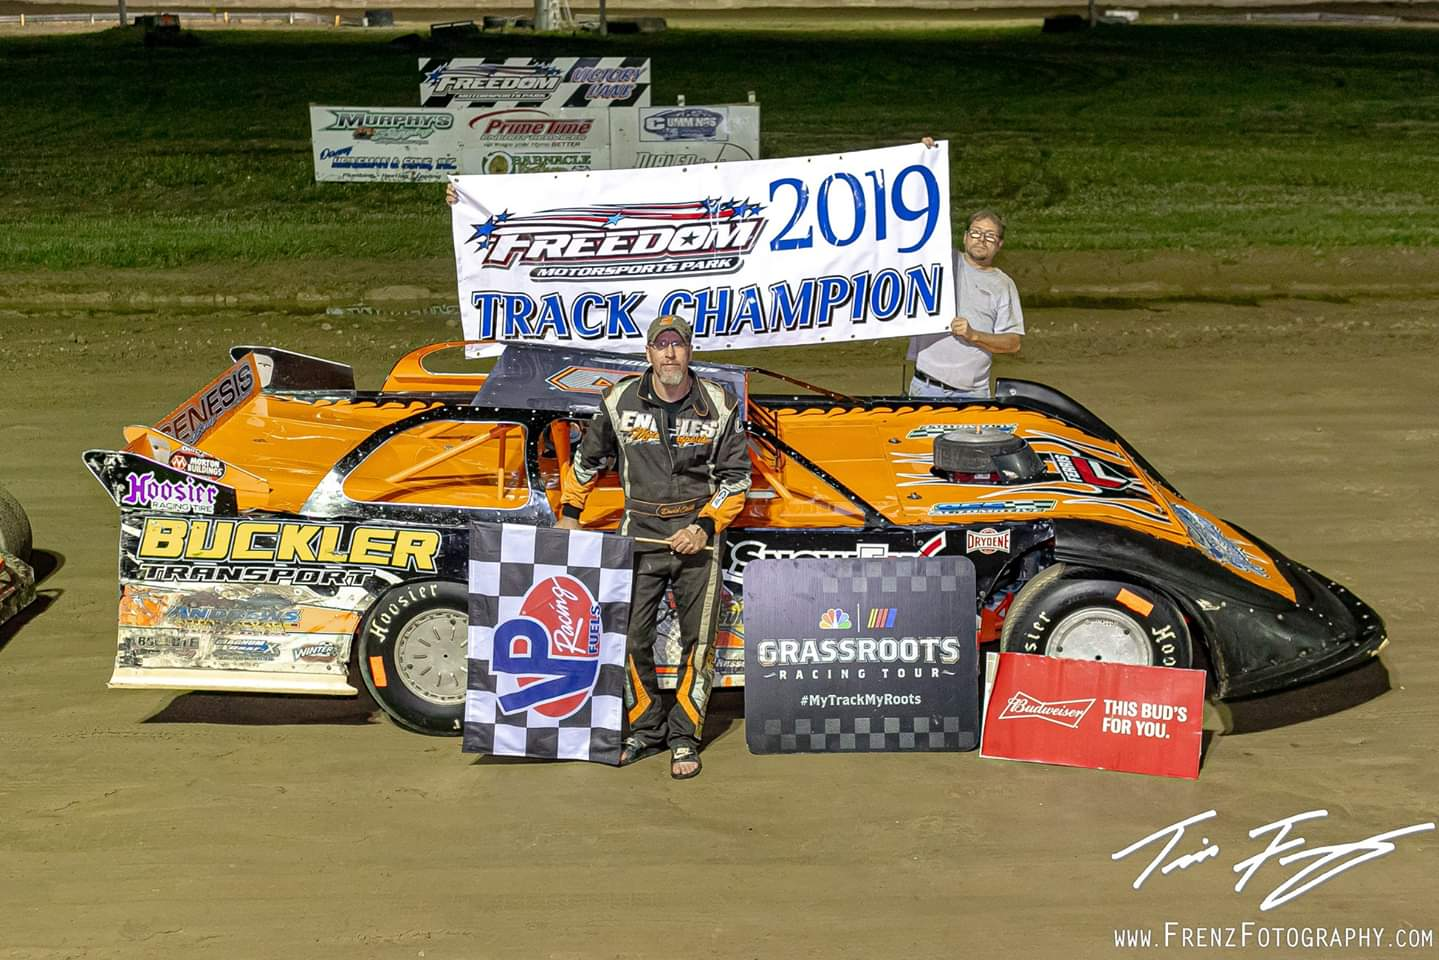 2019 Superlatemodel Champion David Scott